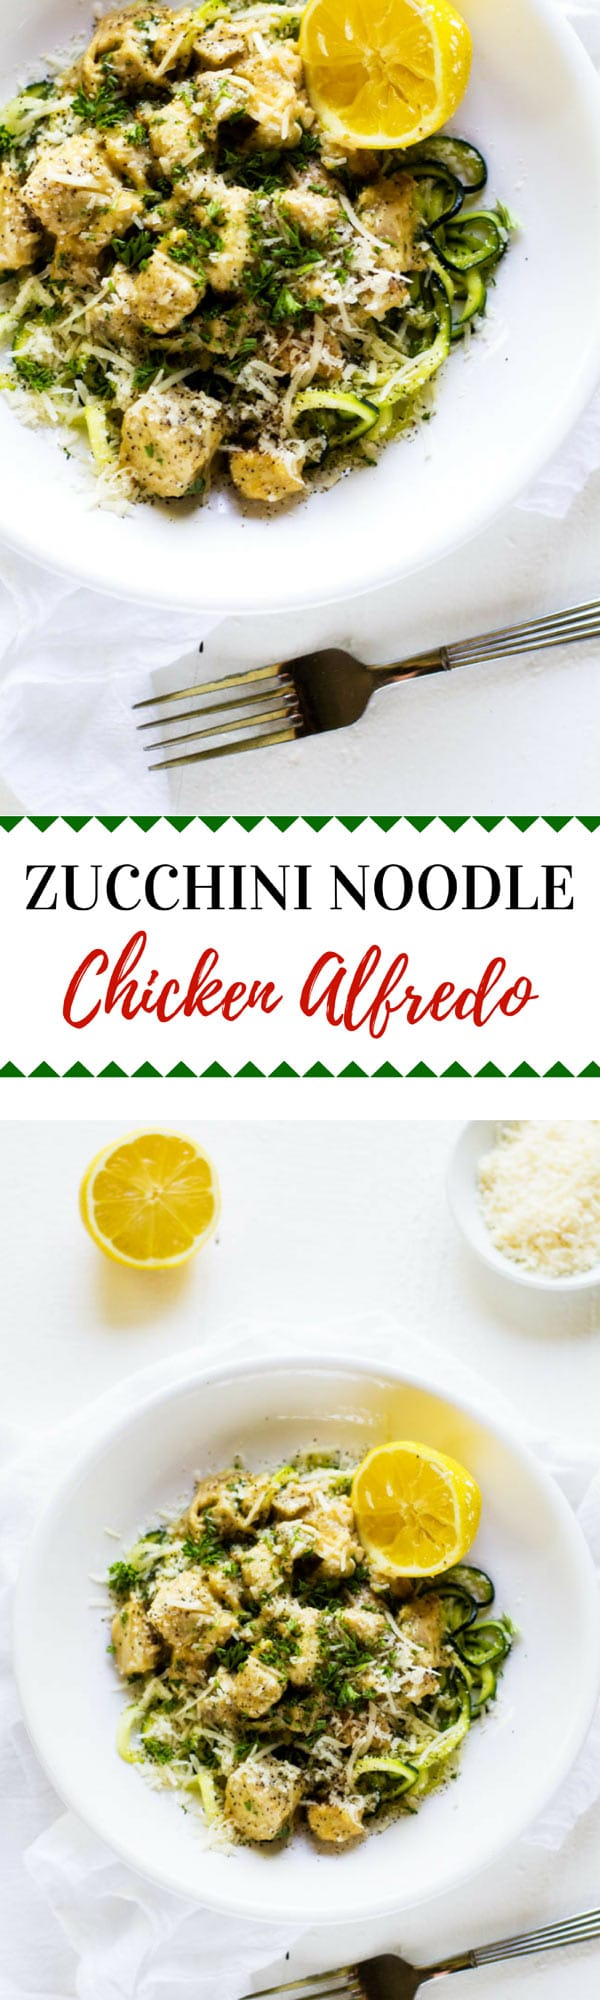 This Chicken Zucchini Noodle Alfredo is a delicious low-carb option to traditional pasta. Keto Friendly with the use of heavy cream or use my quinoa cream recipe for a lower fat alternative.  This Zucchini Pasta with Chicken is one the whole family will love. #lowcarb #keto #glutenfree